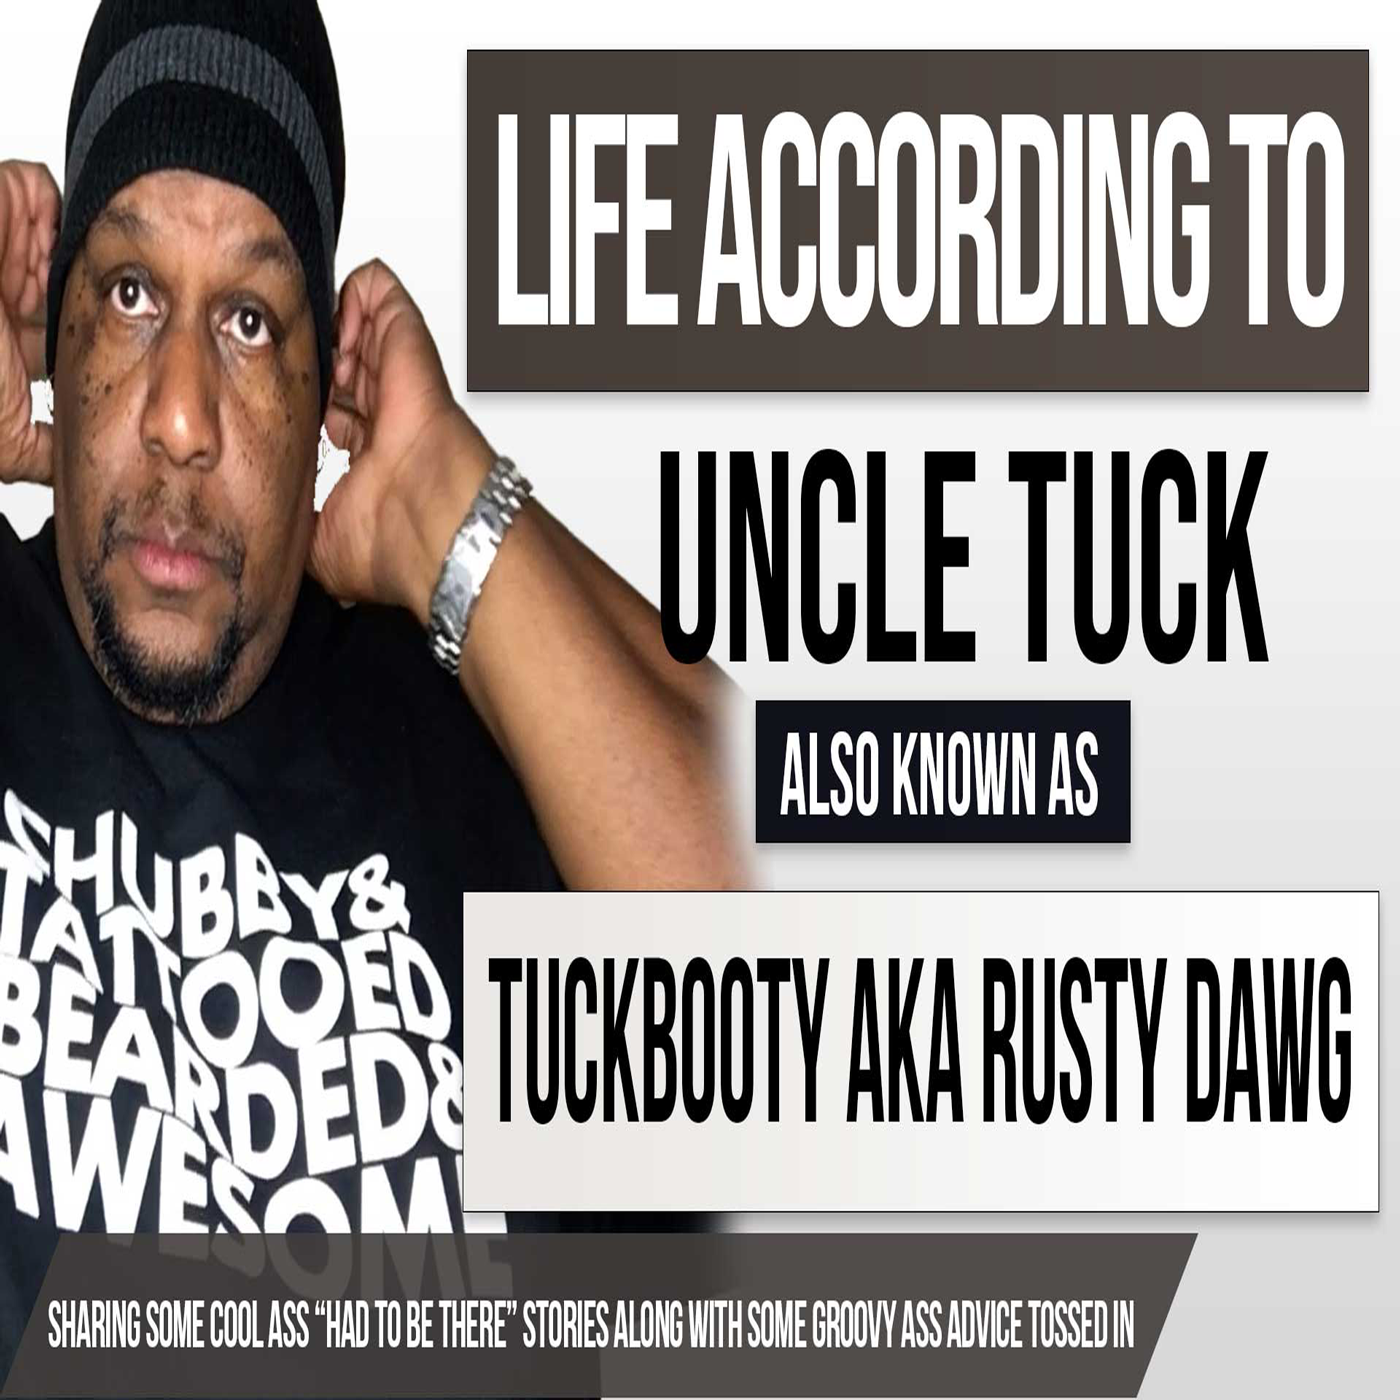 Life According to Uncle Tuck